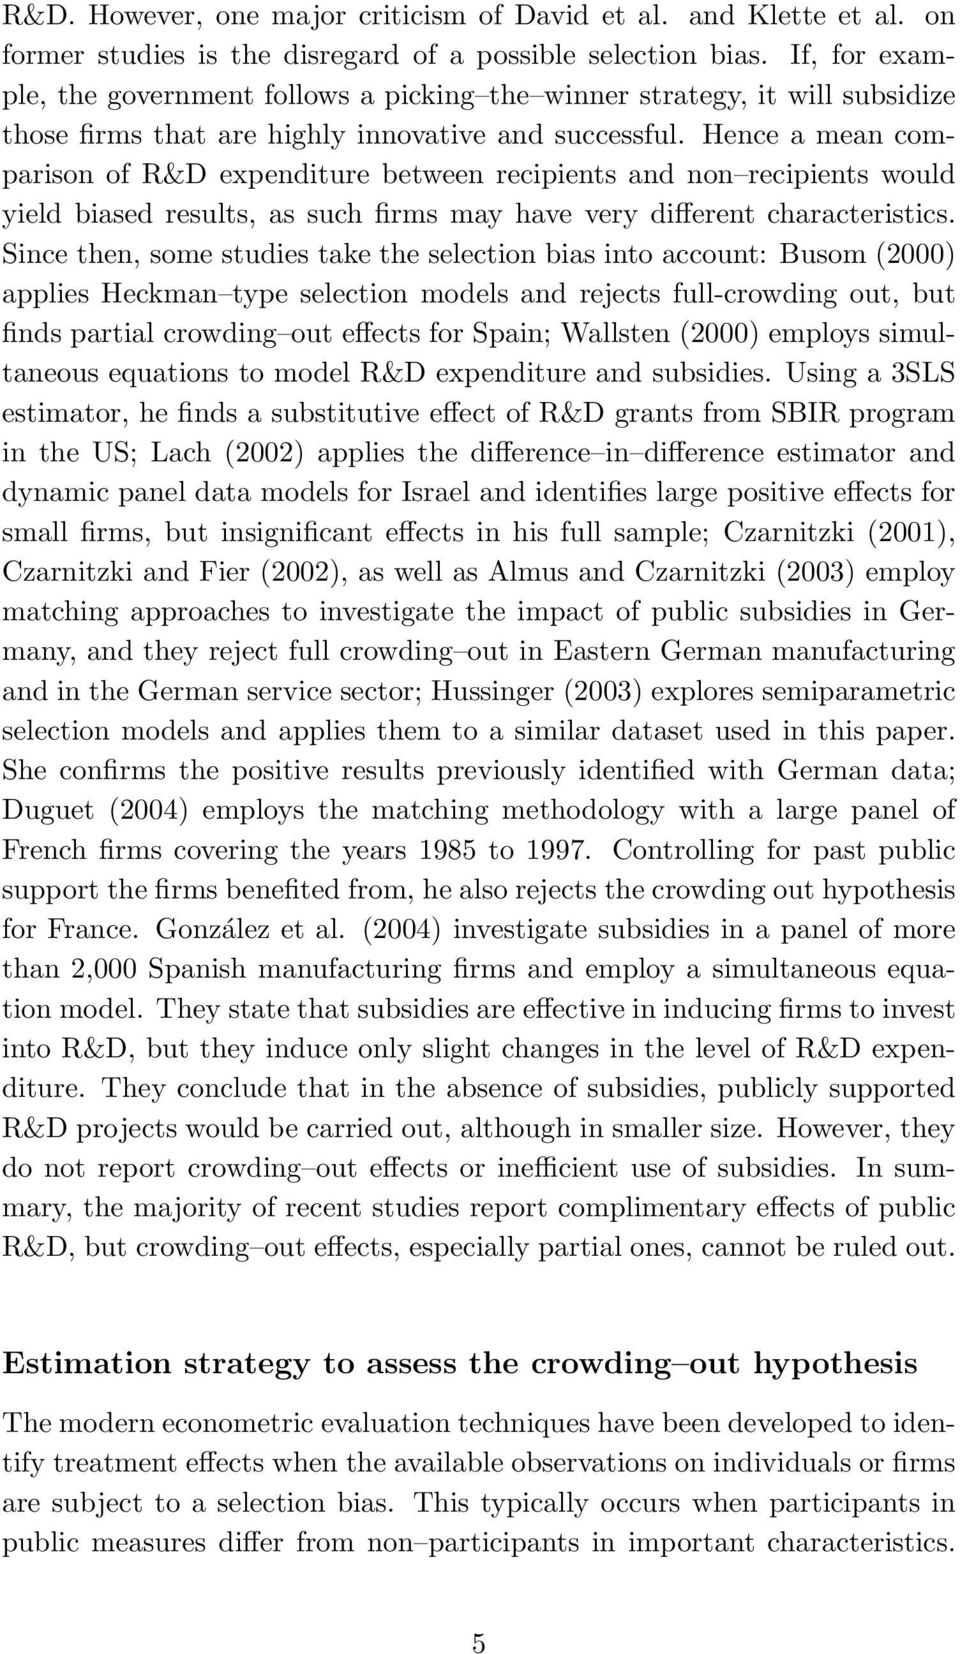 Hence a mean comparison of R&D expenditure between recipients and non recipients would yield biased results, as such firms may have very different characteristics.